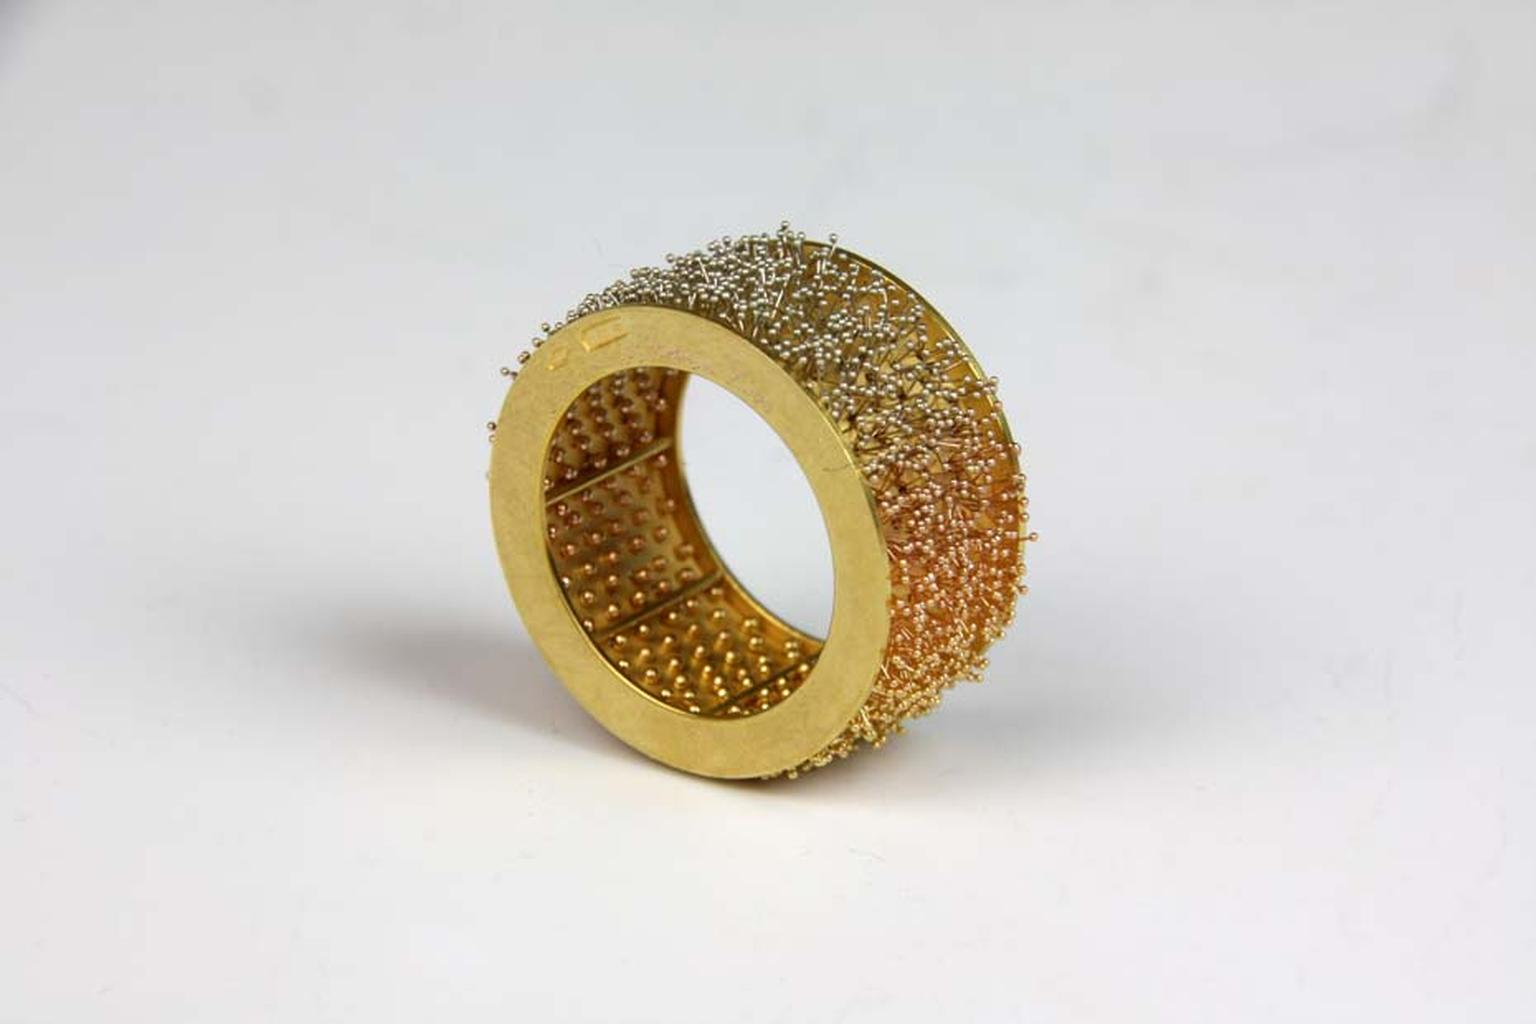 Giovanni Corvaja ring with gold and platinum wire. Image courtesy of Adrian Sassoon, London.